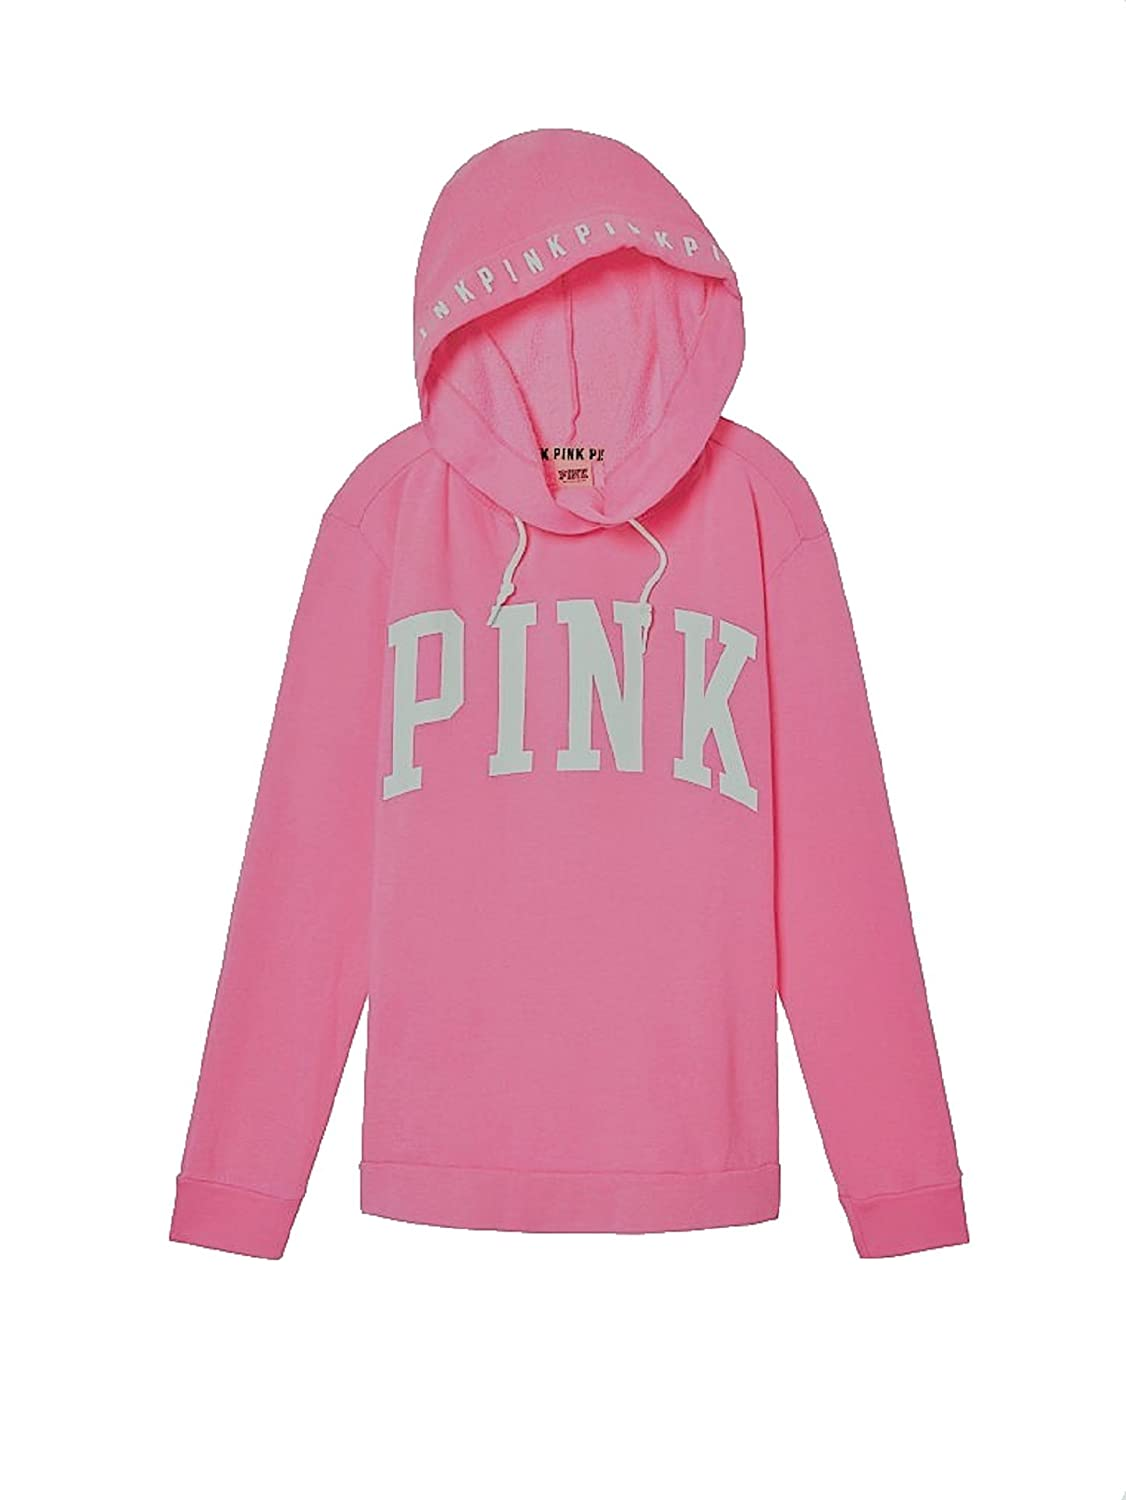 268b466c16b0c Victoria's Secret Pink Hoodie Campus Crossover Tunic Sweatshirt at Amazon  Women's Clothing store: